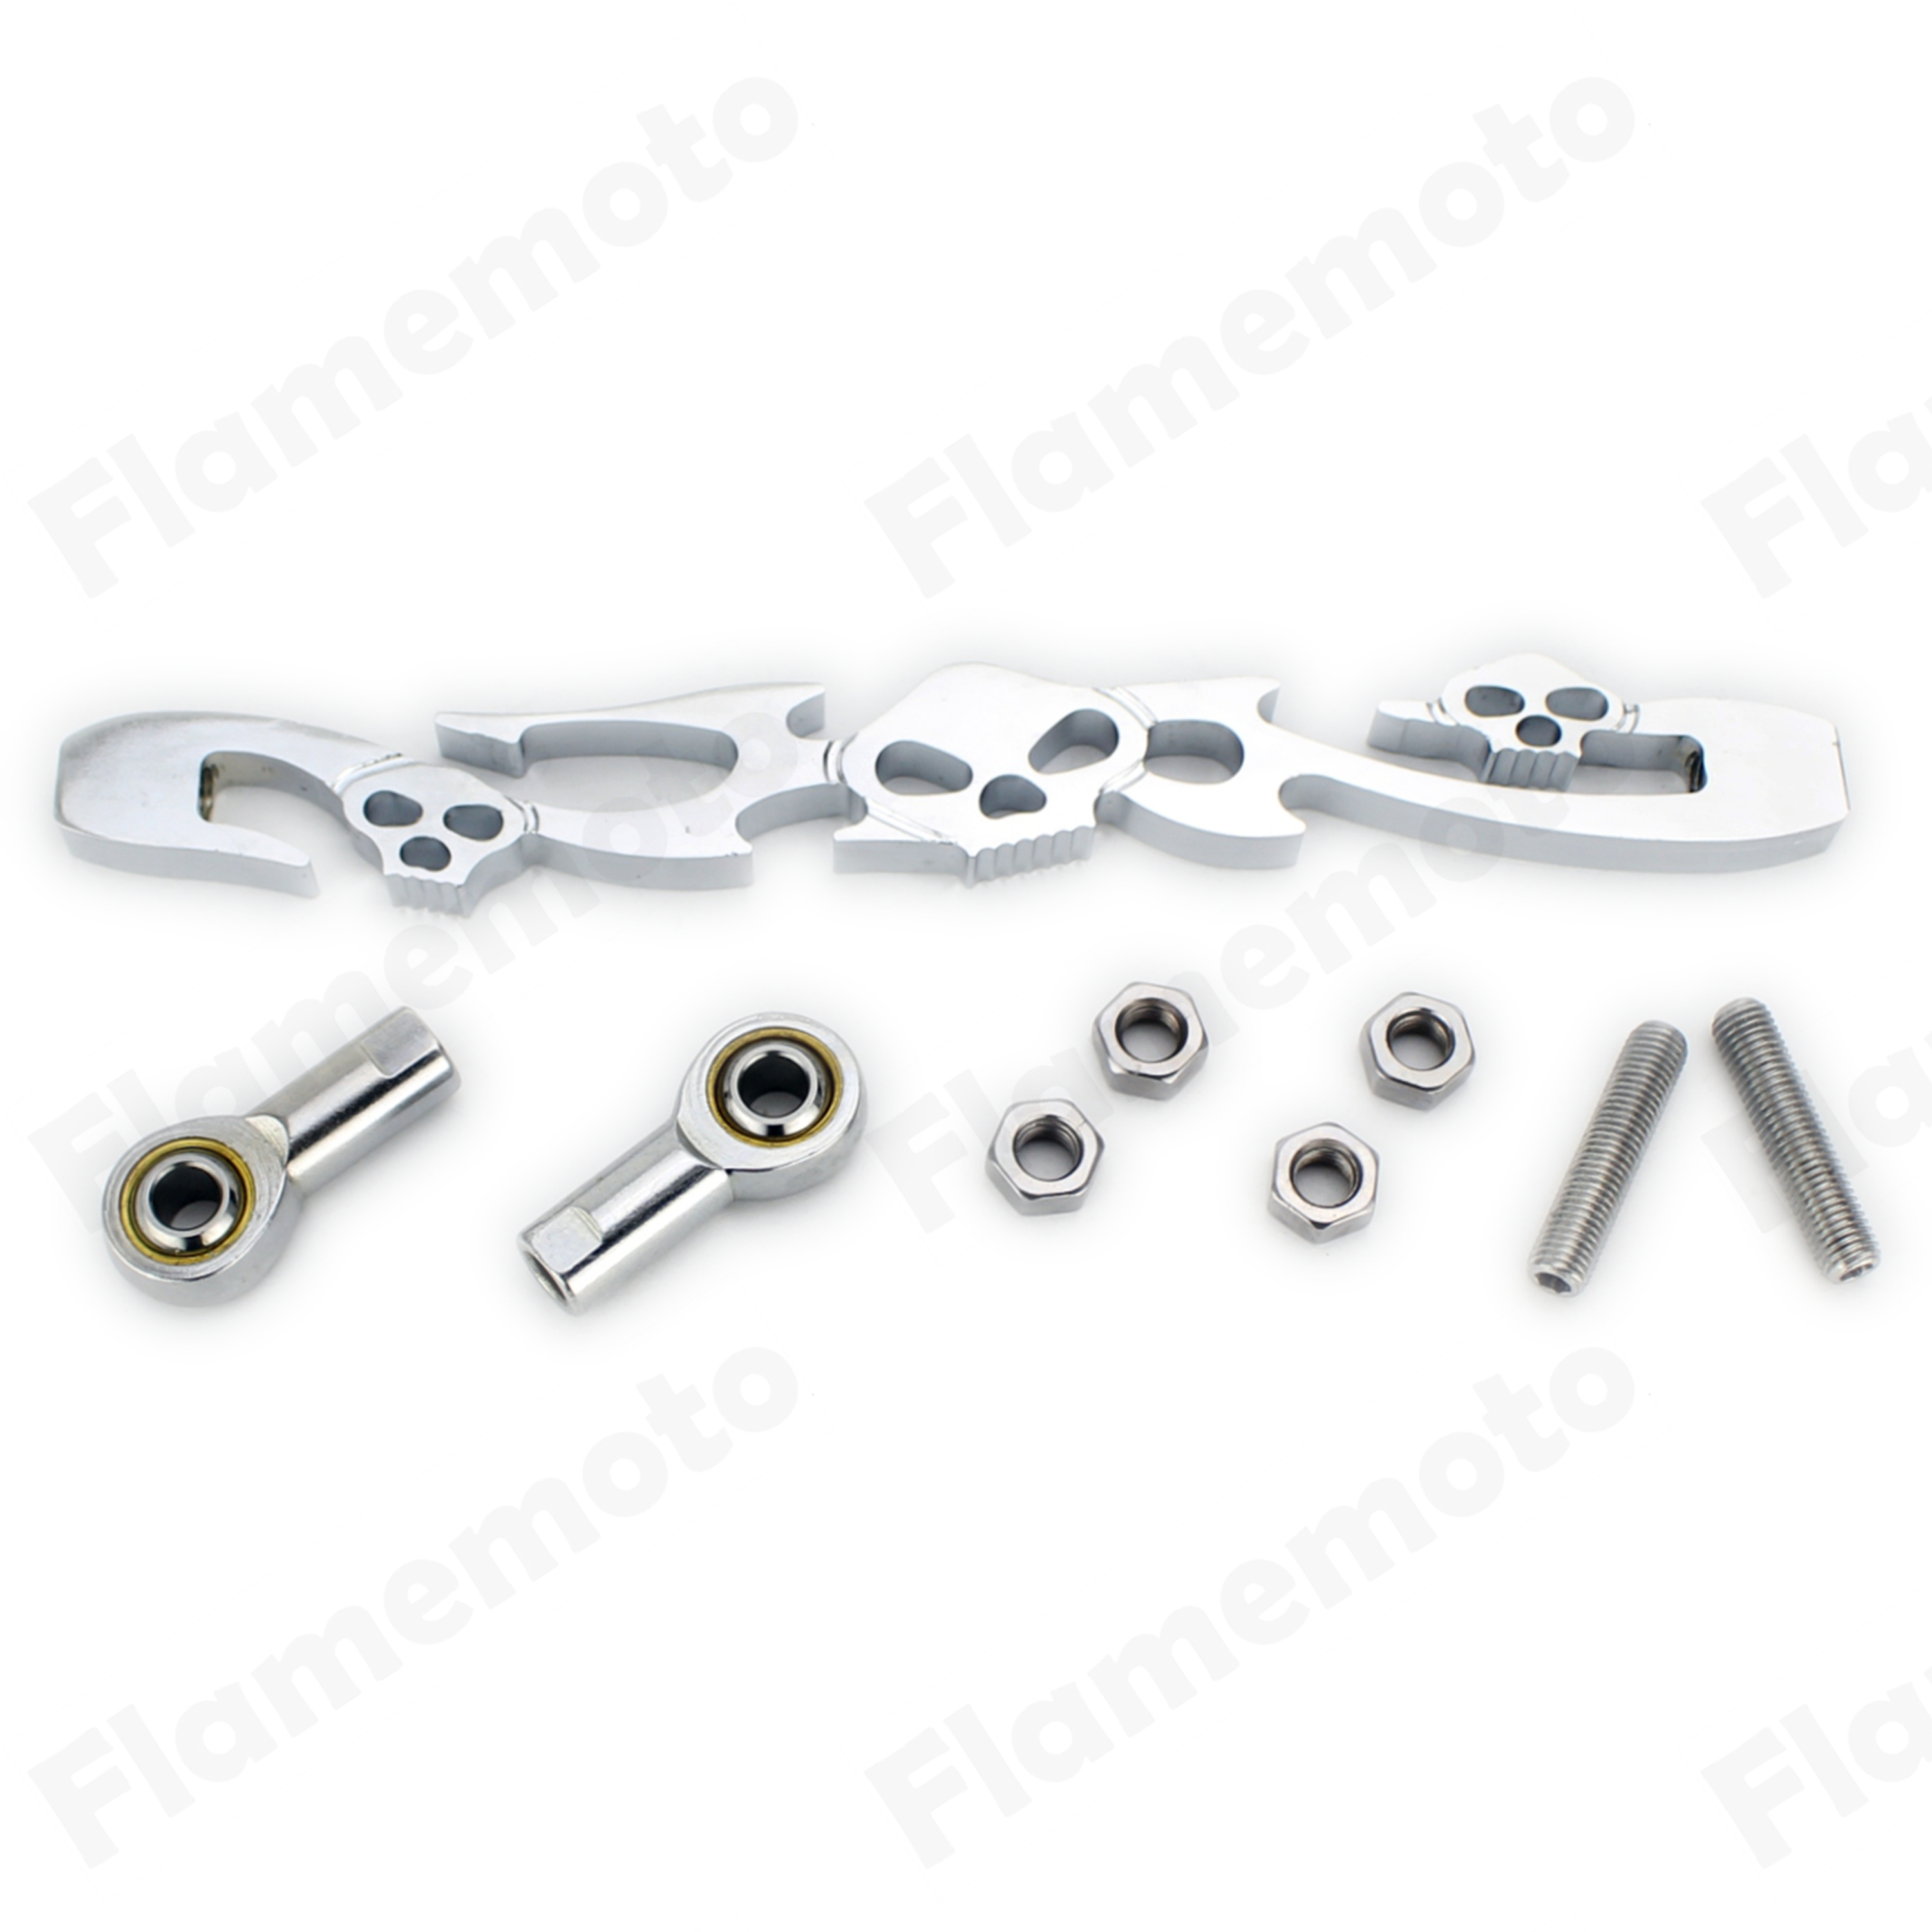 New Skull Chrome Gear Motorcycle Shift Linkage For Harley Softail Electra Glide Tour Glide Road King FXDWG CVO FLS